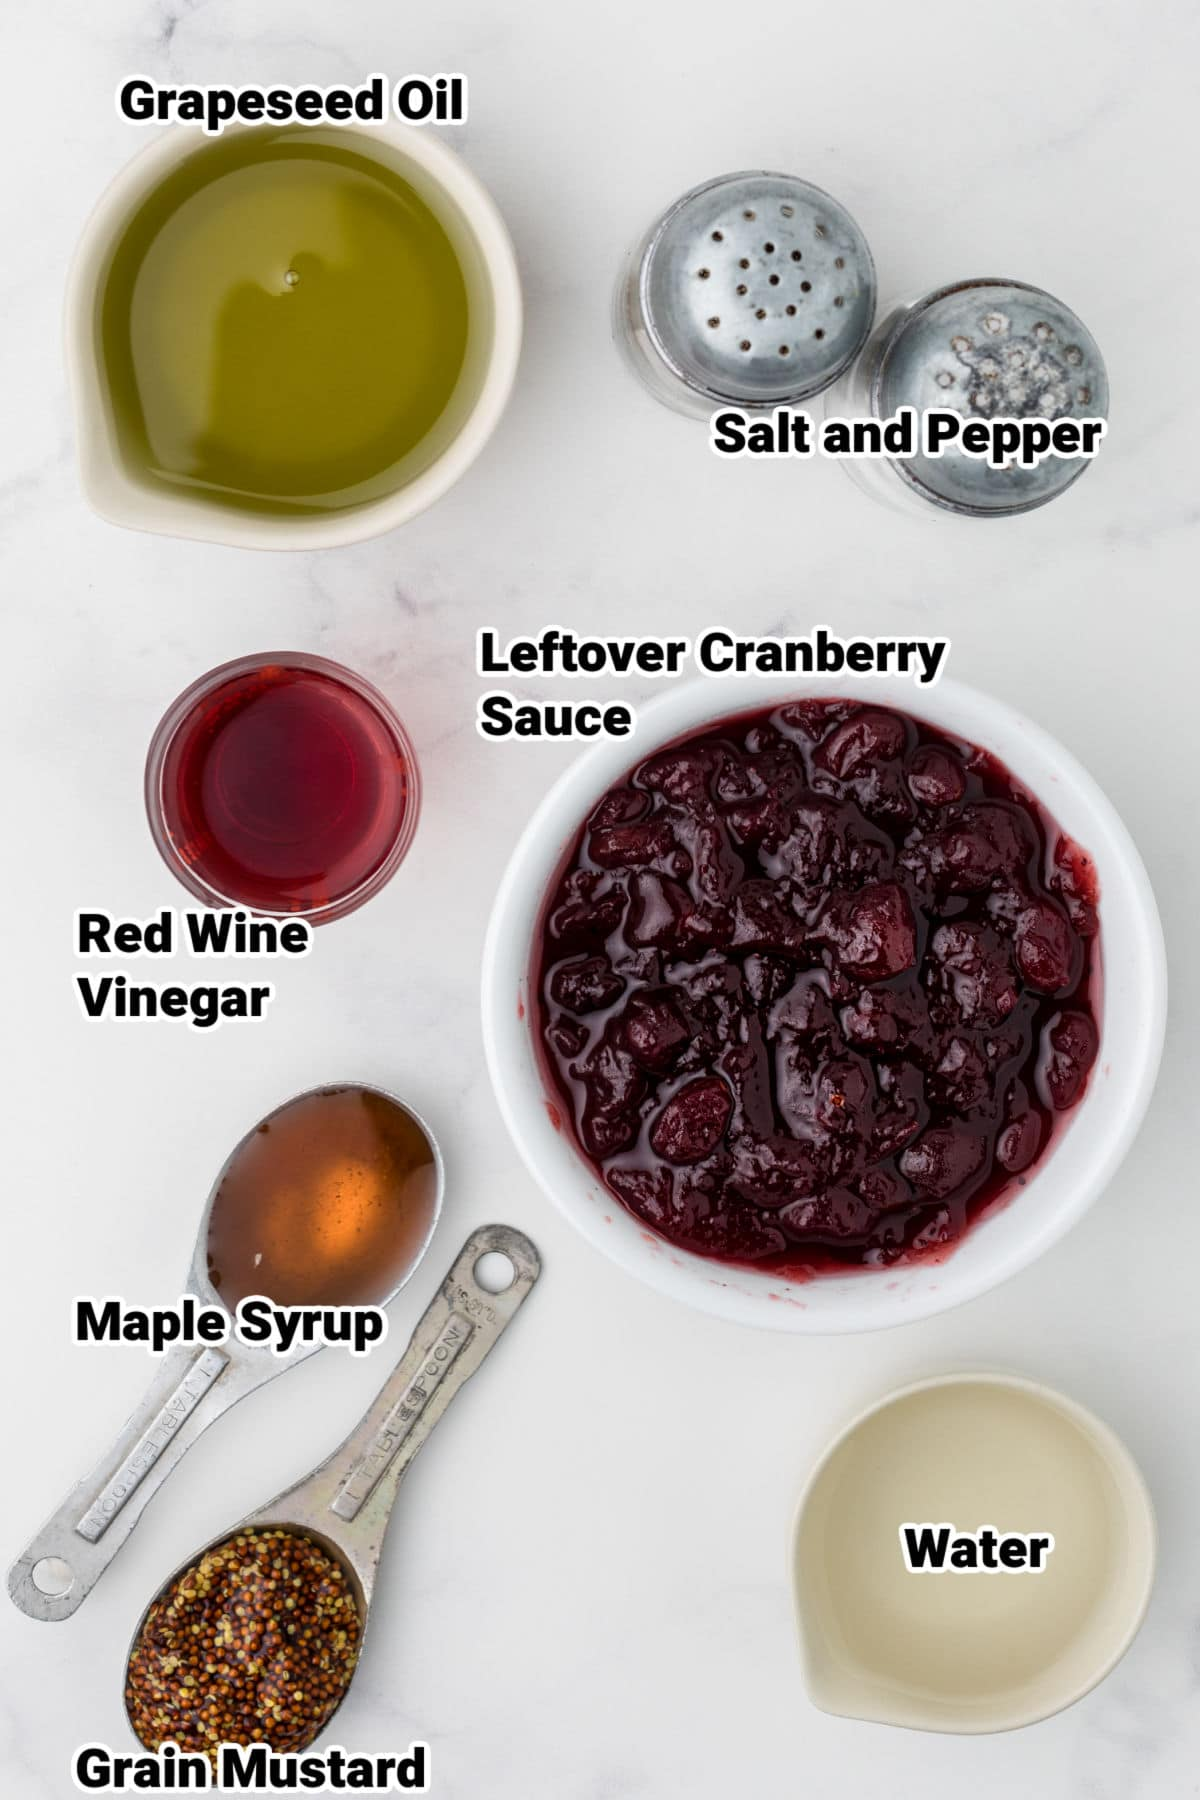 ingredients laid out for a cranberry vinaigrette